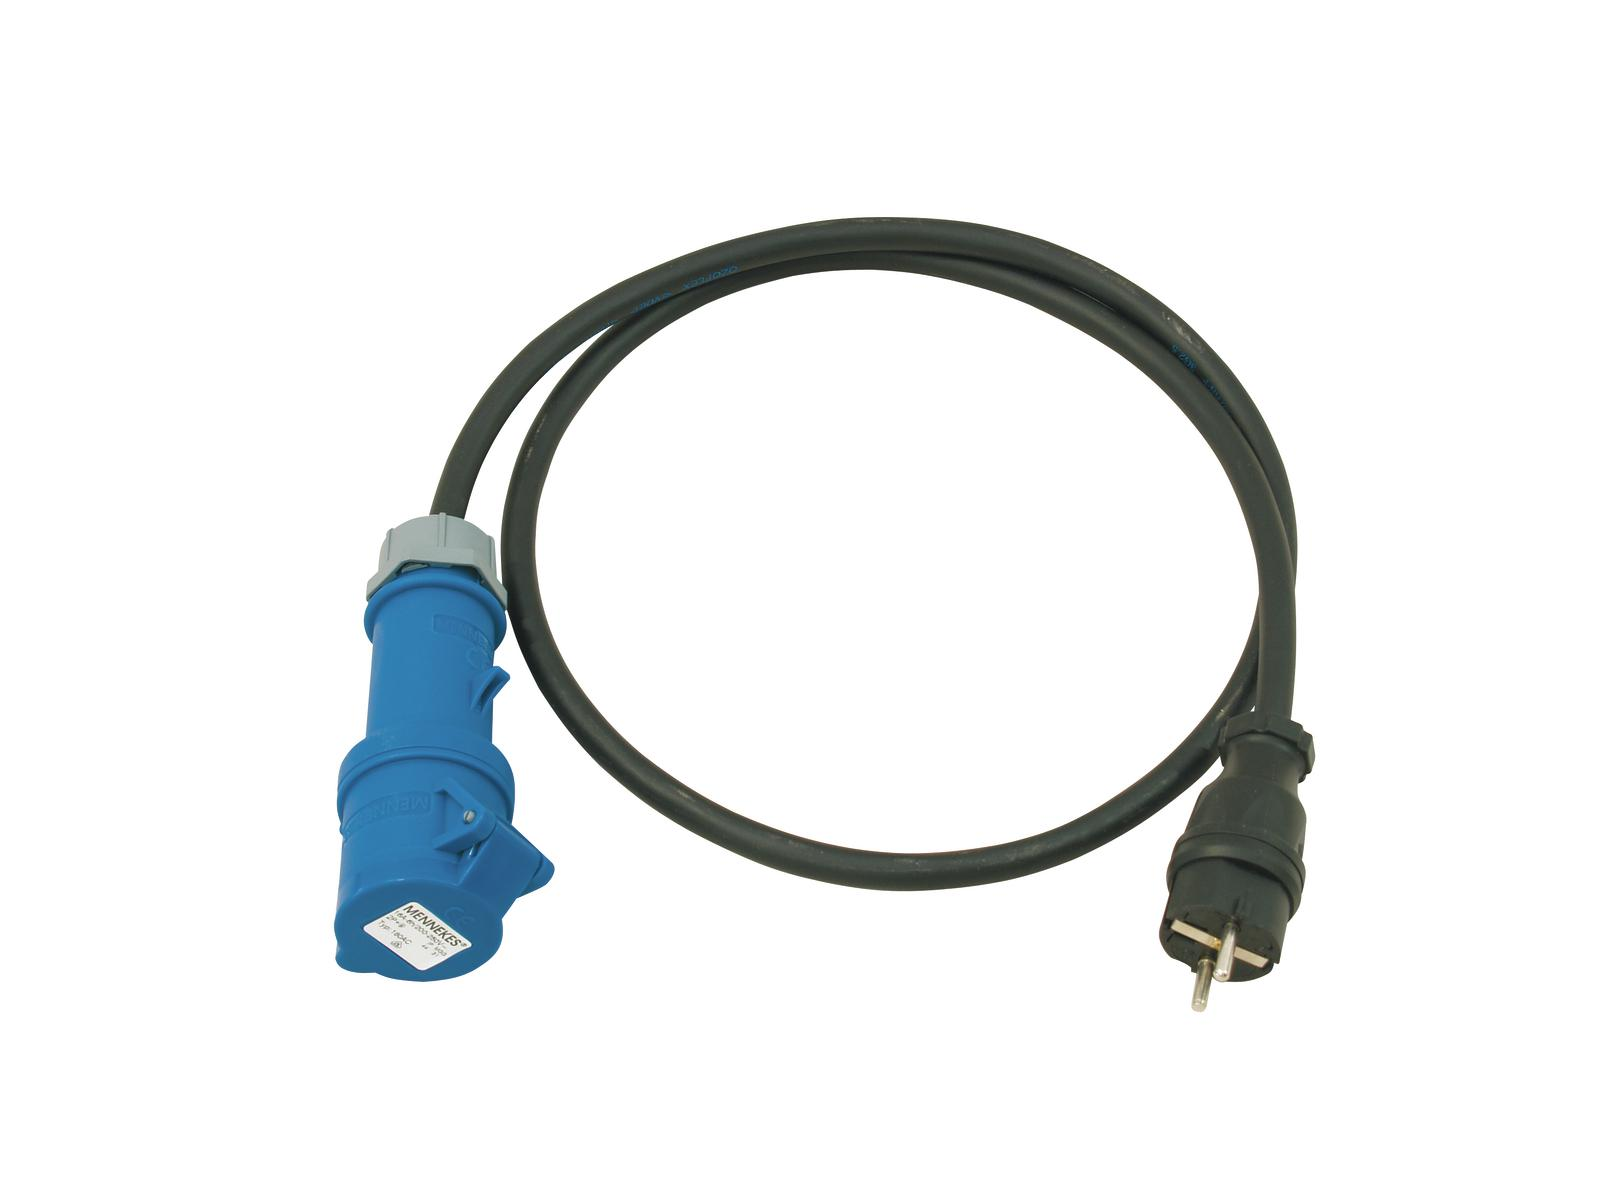 PSSO Adaptercable spina di Sicurezza(M)/CEE 2.5